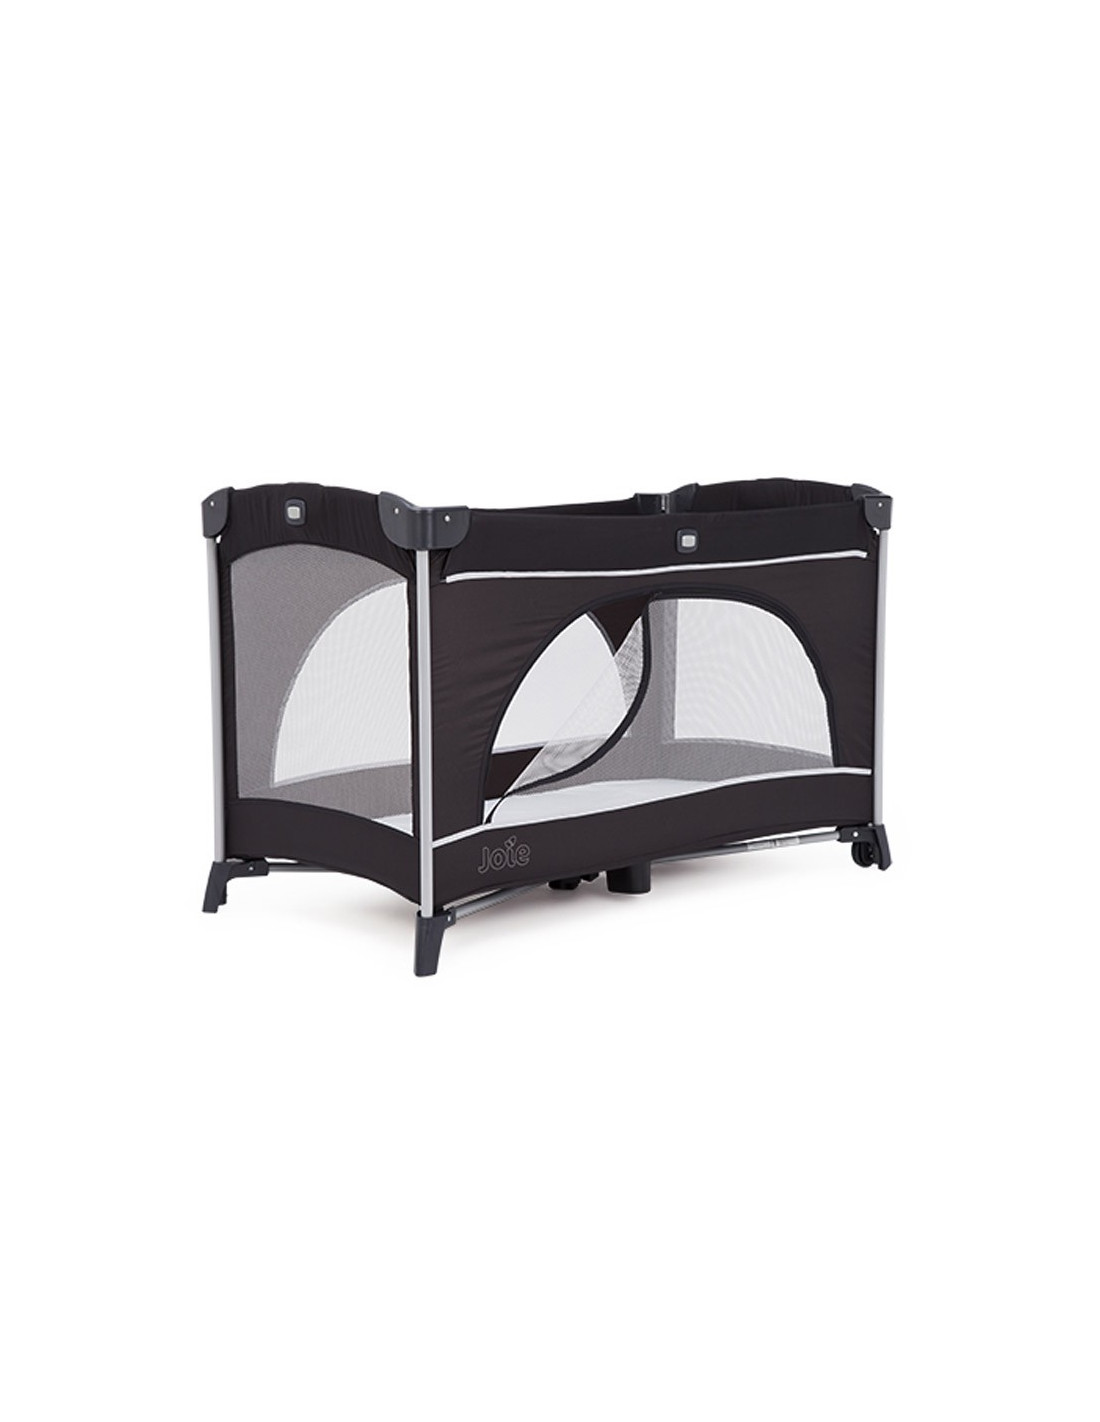 cuna de viaje joie allura 120 black ink env o 24h. Black Bedroom Furniture Sets. Home Design Ideas